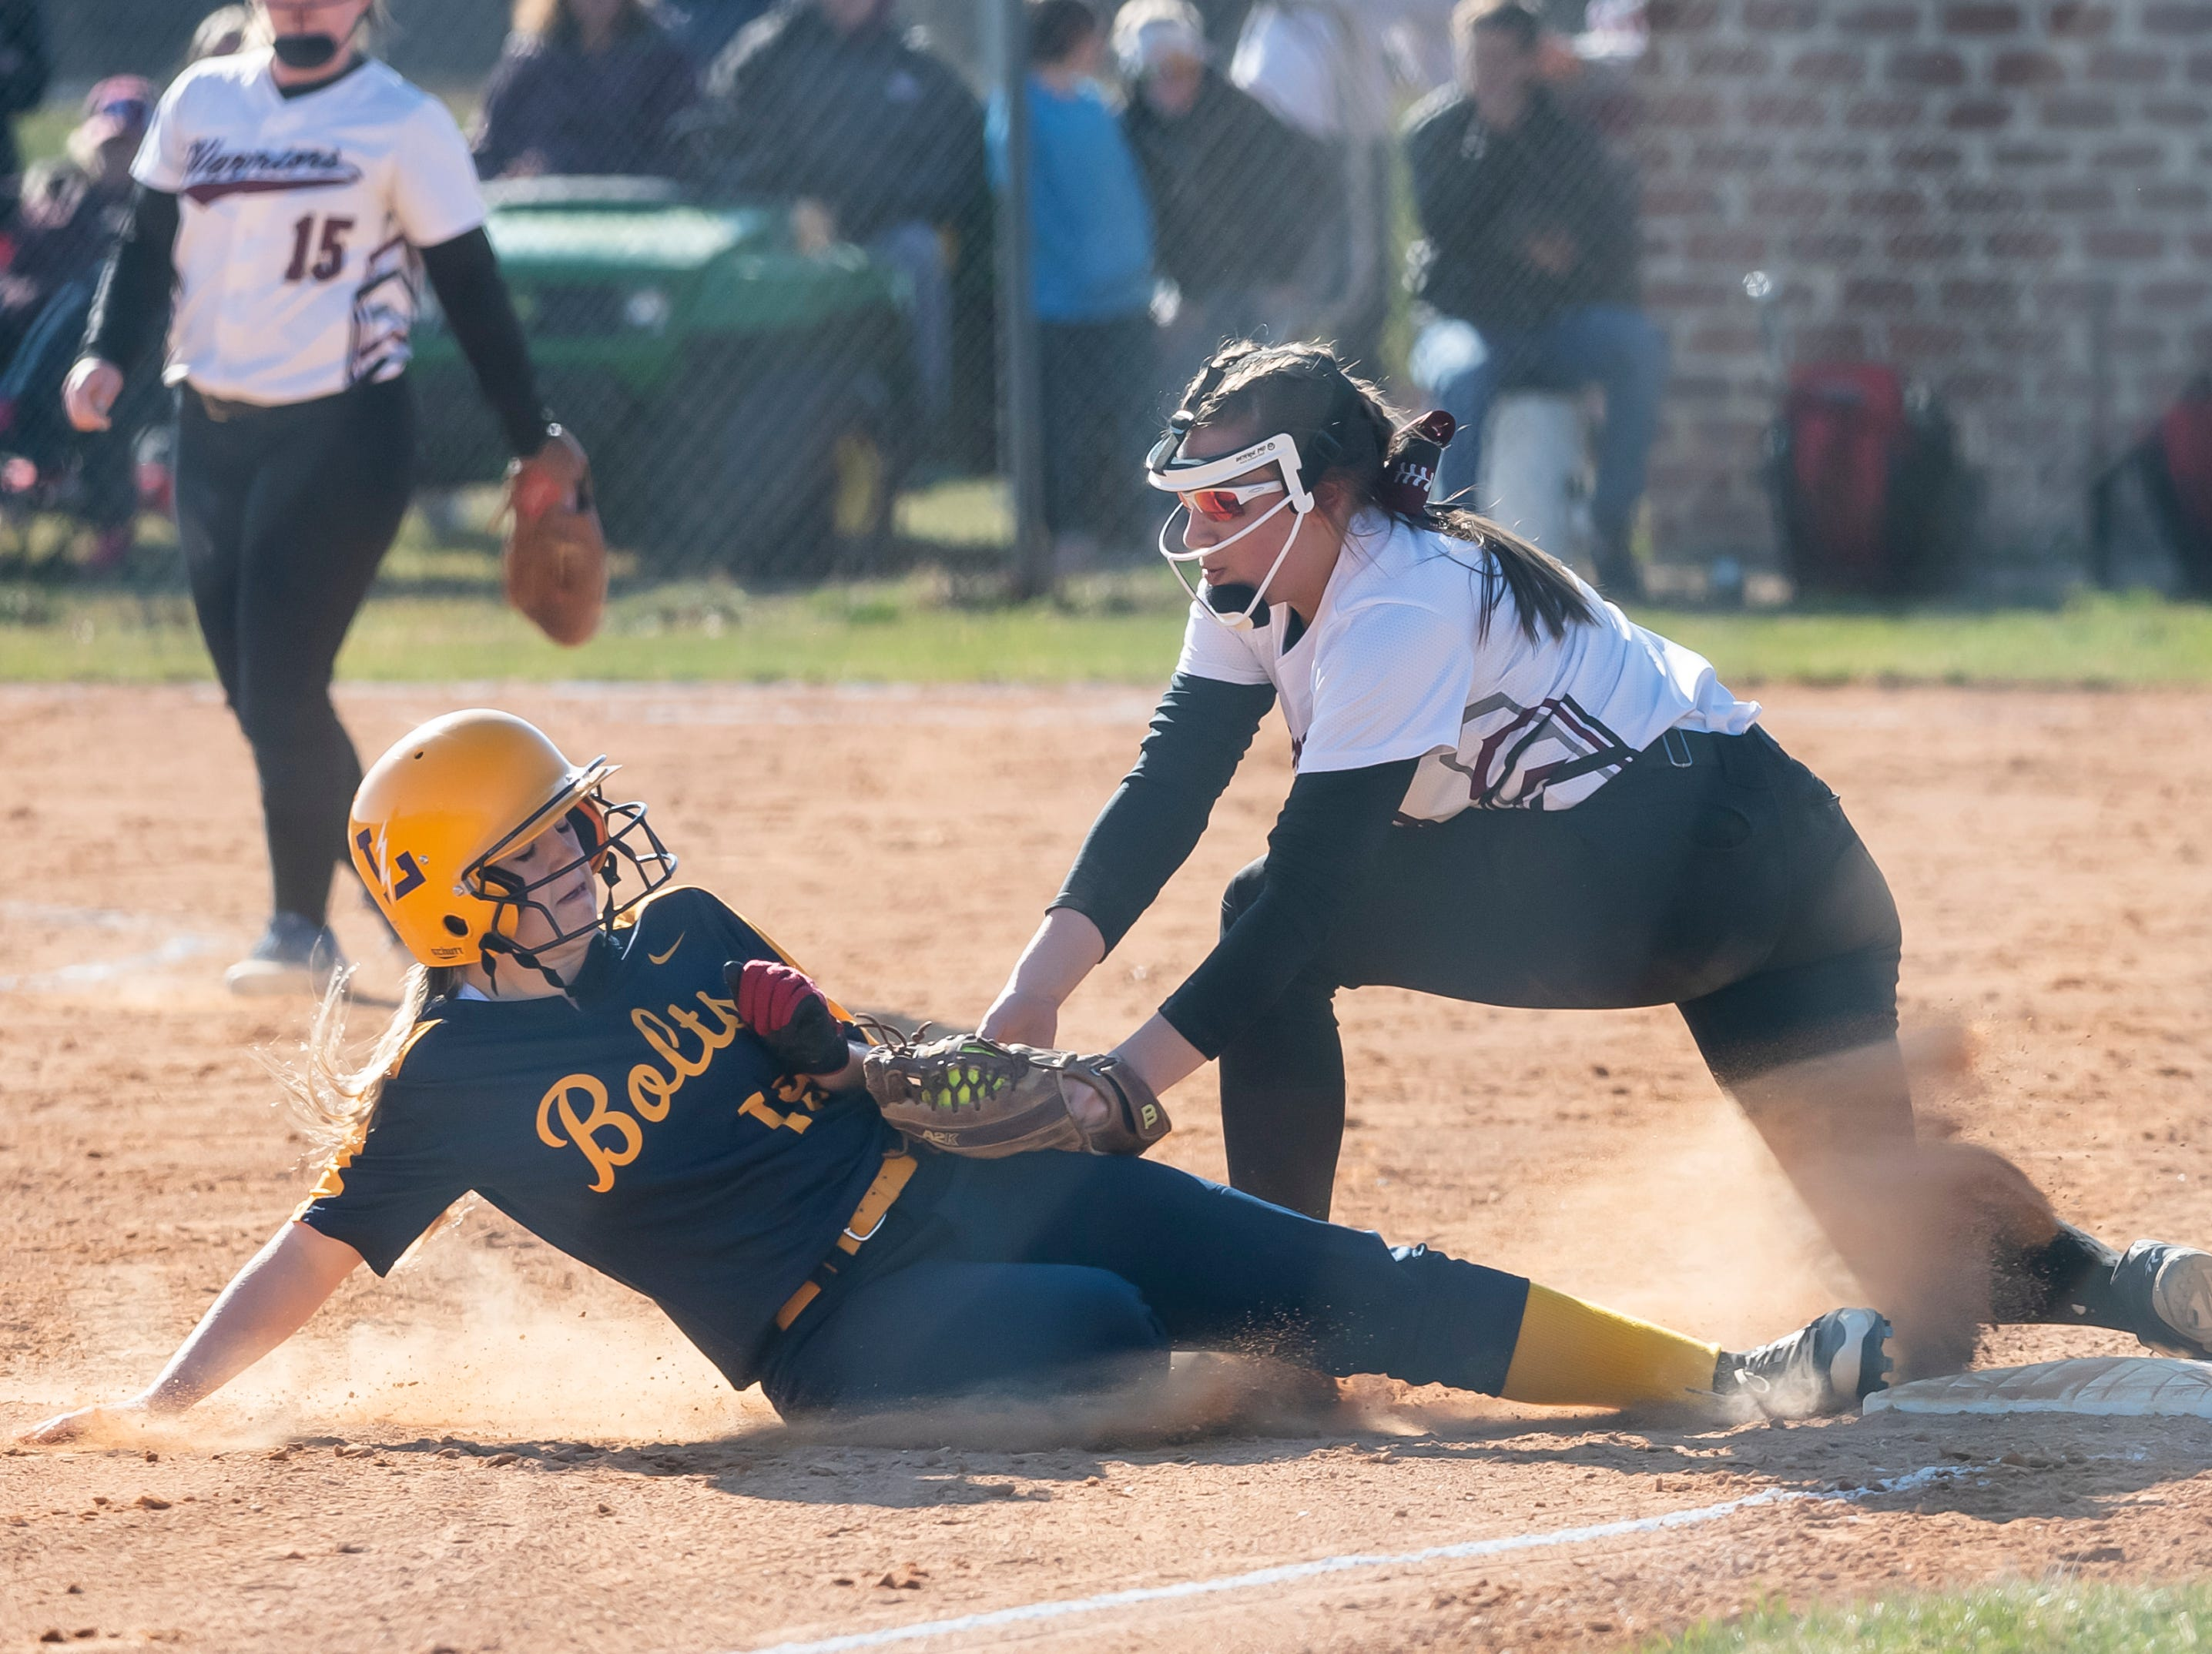 Gettysburg's Kaelyn Blocher tags out Littlestown's Carli Thayer at third base during a YAIAA softball game on Monday, April 1, 2019. The Warriors fell 10-4.